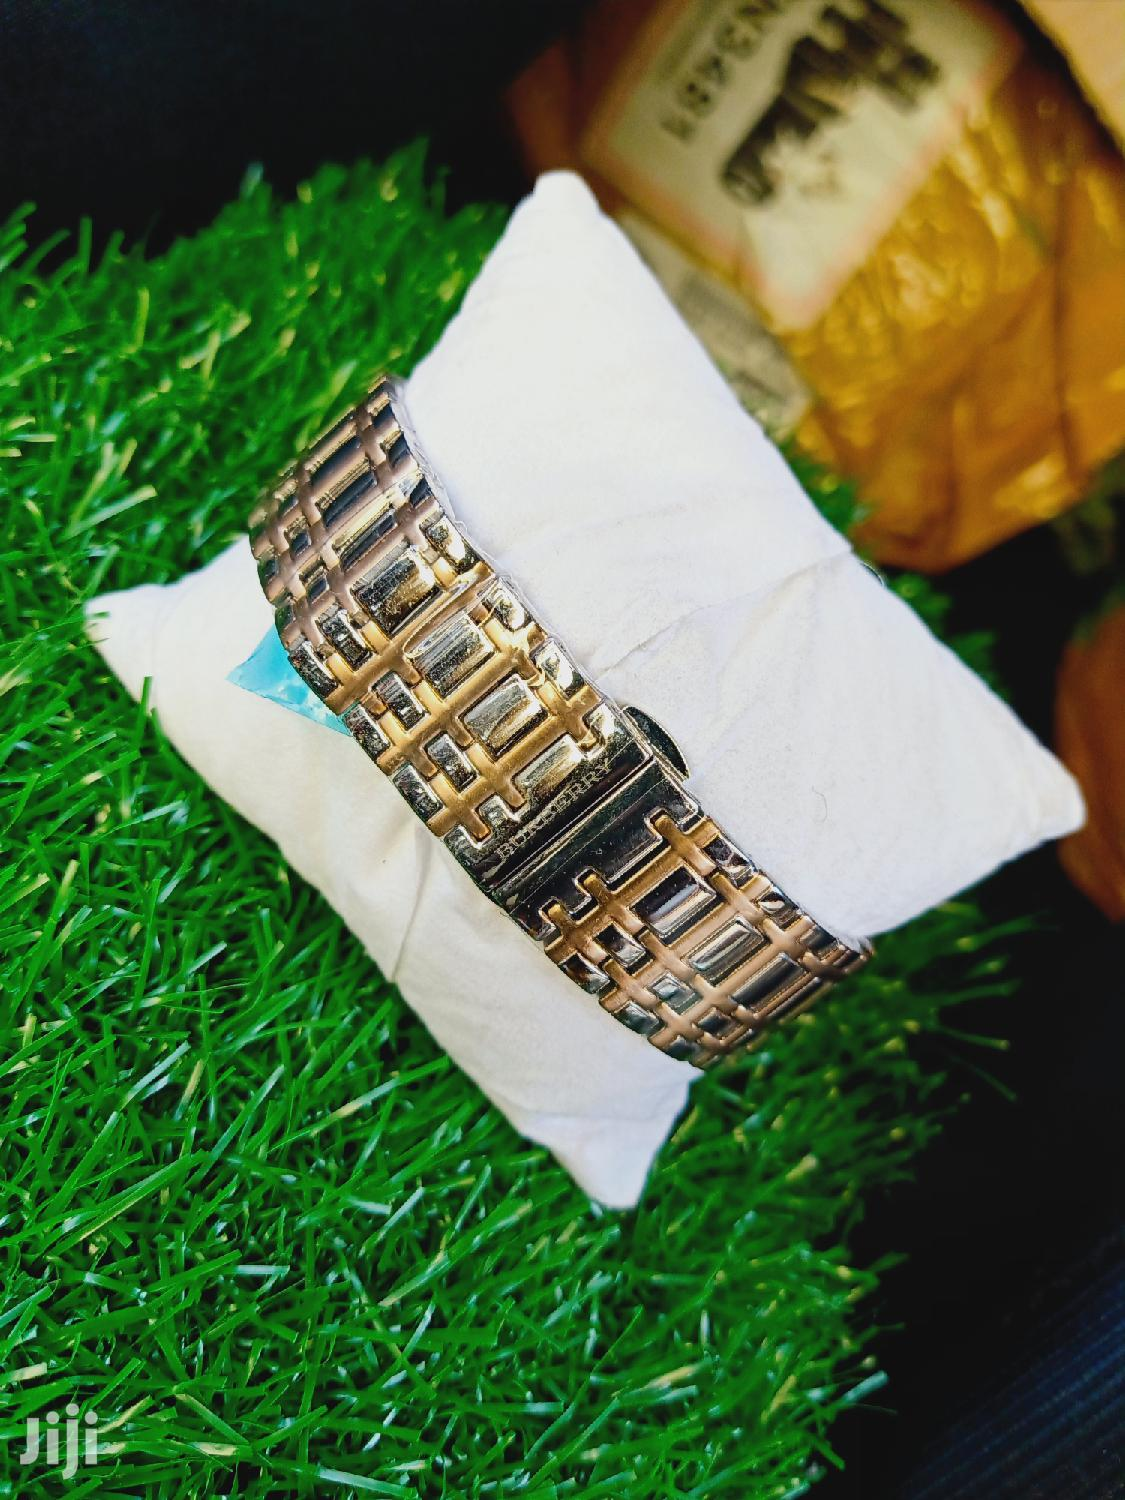 Dagson Watch | Watches for sale in Kampala, Central Region, Uganda